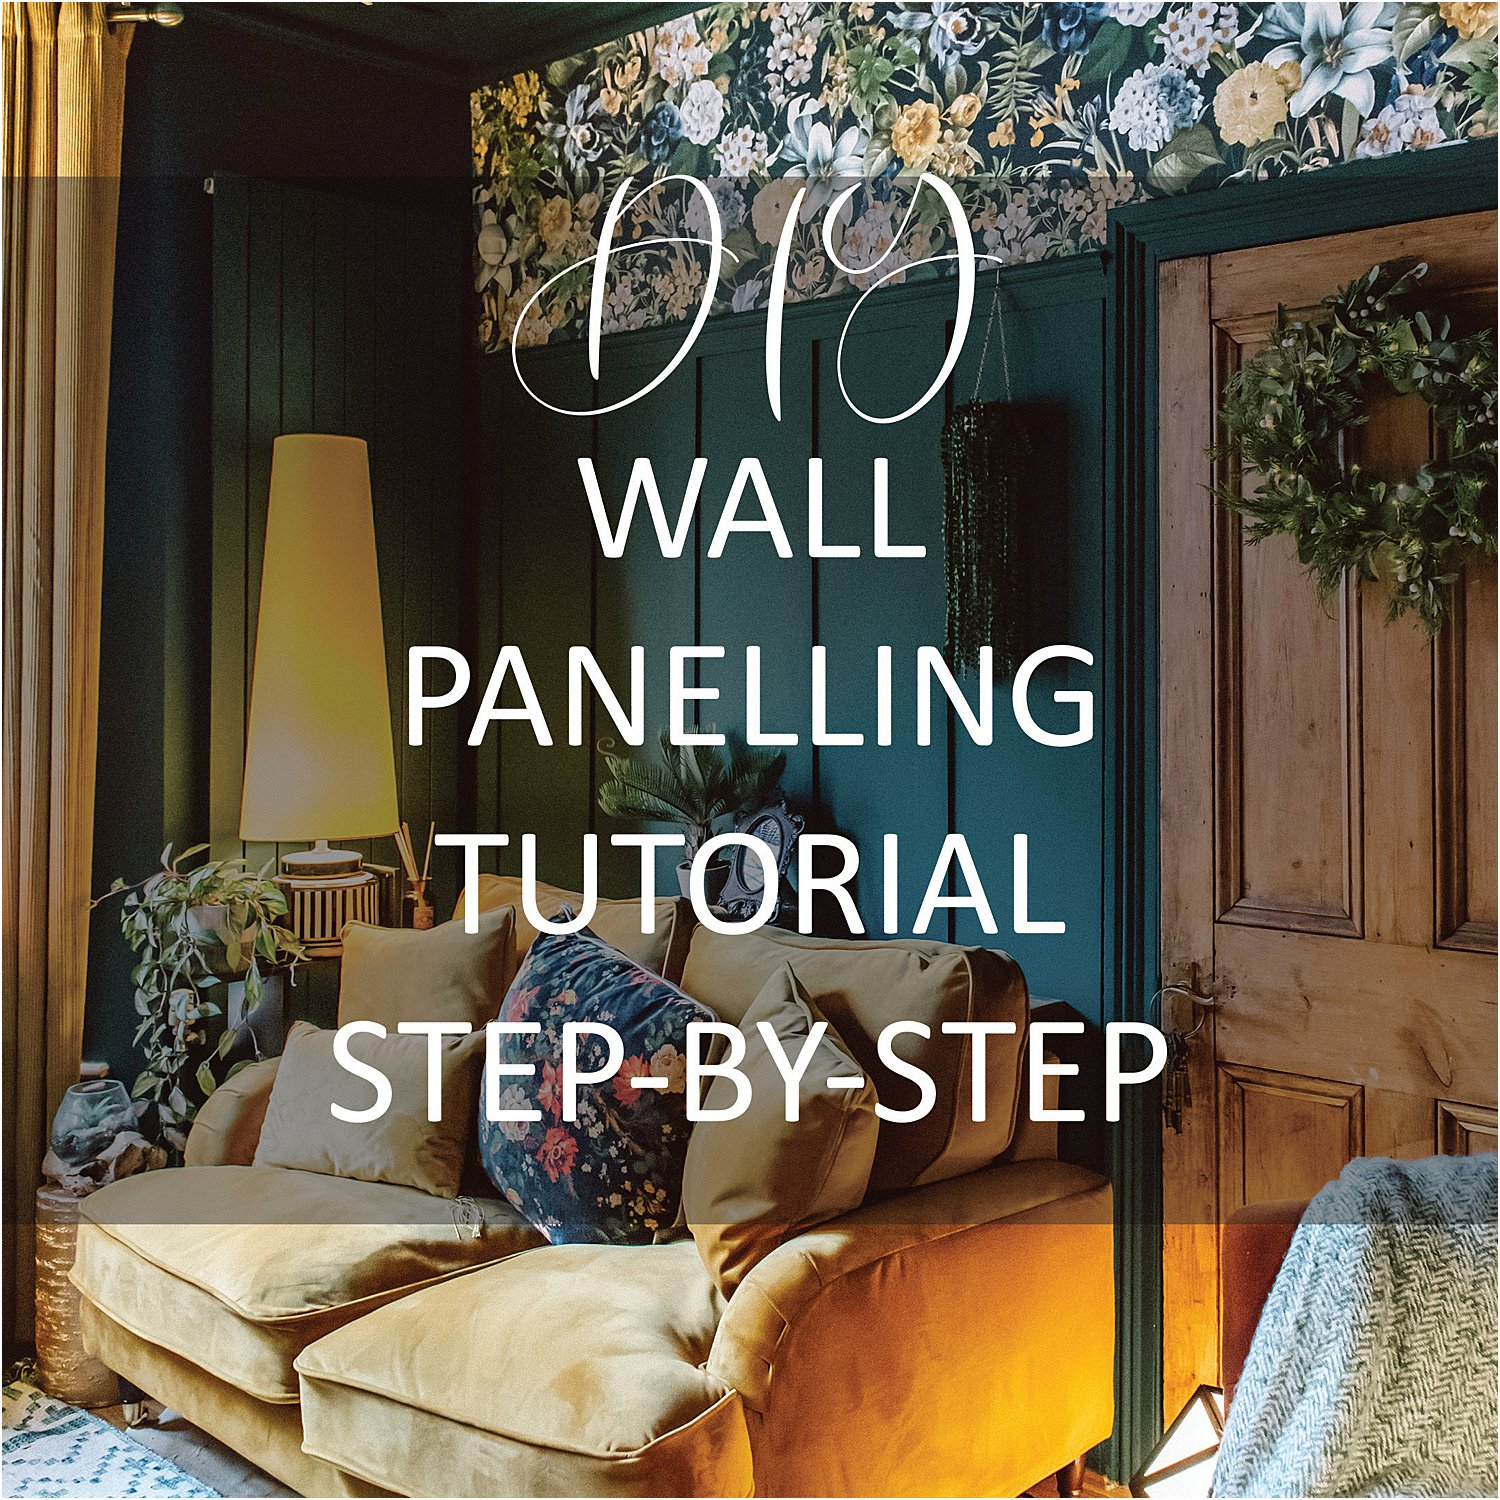 diy-wall-panelling-tutorial-mdf-batten-layered-home